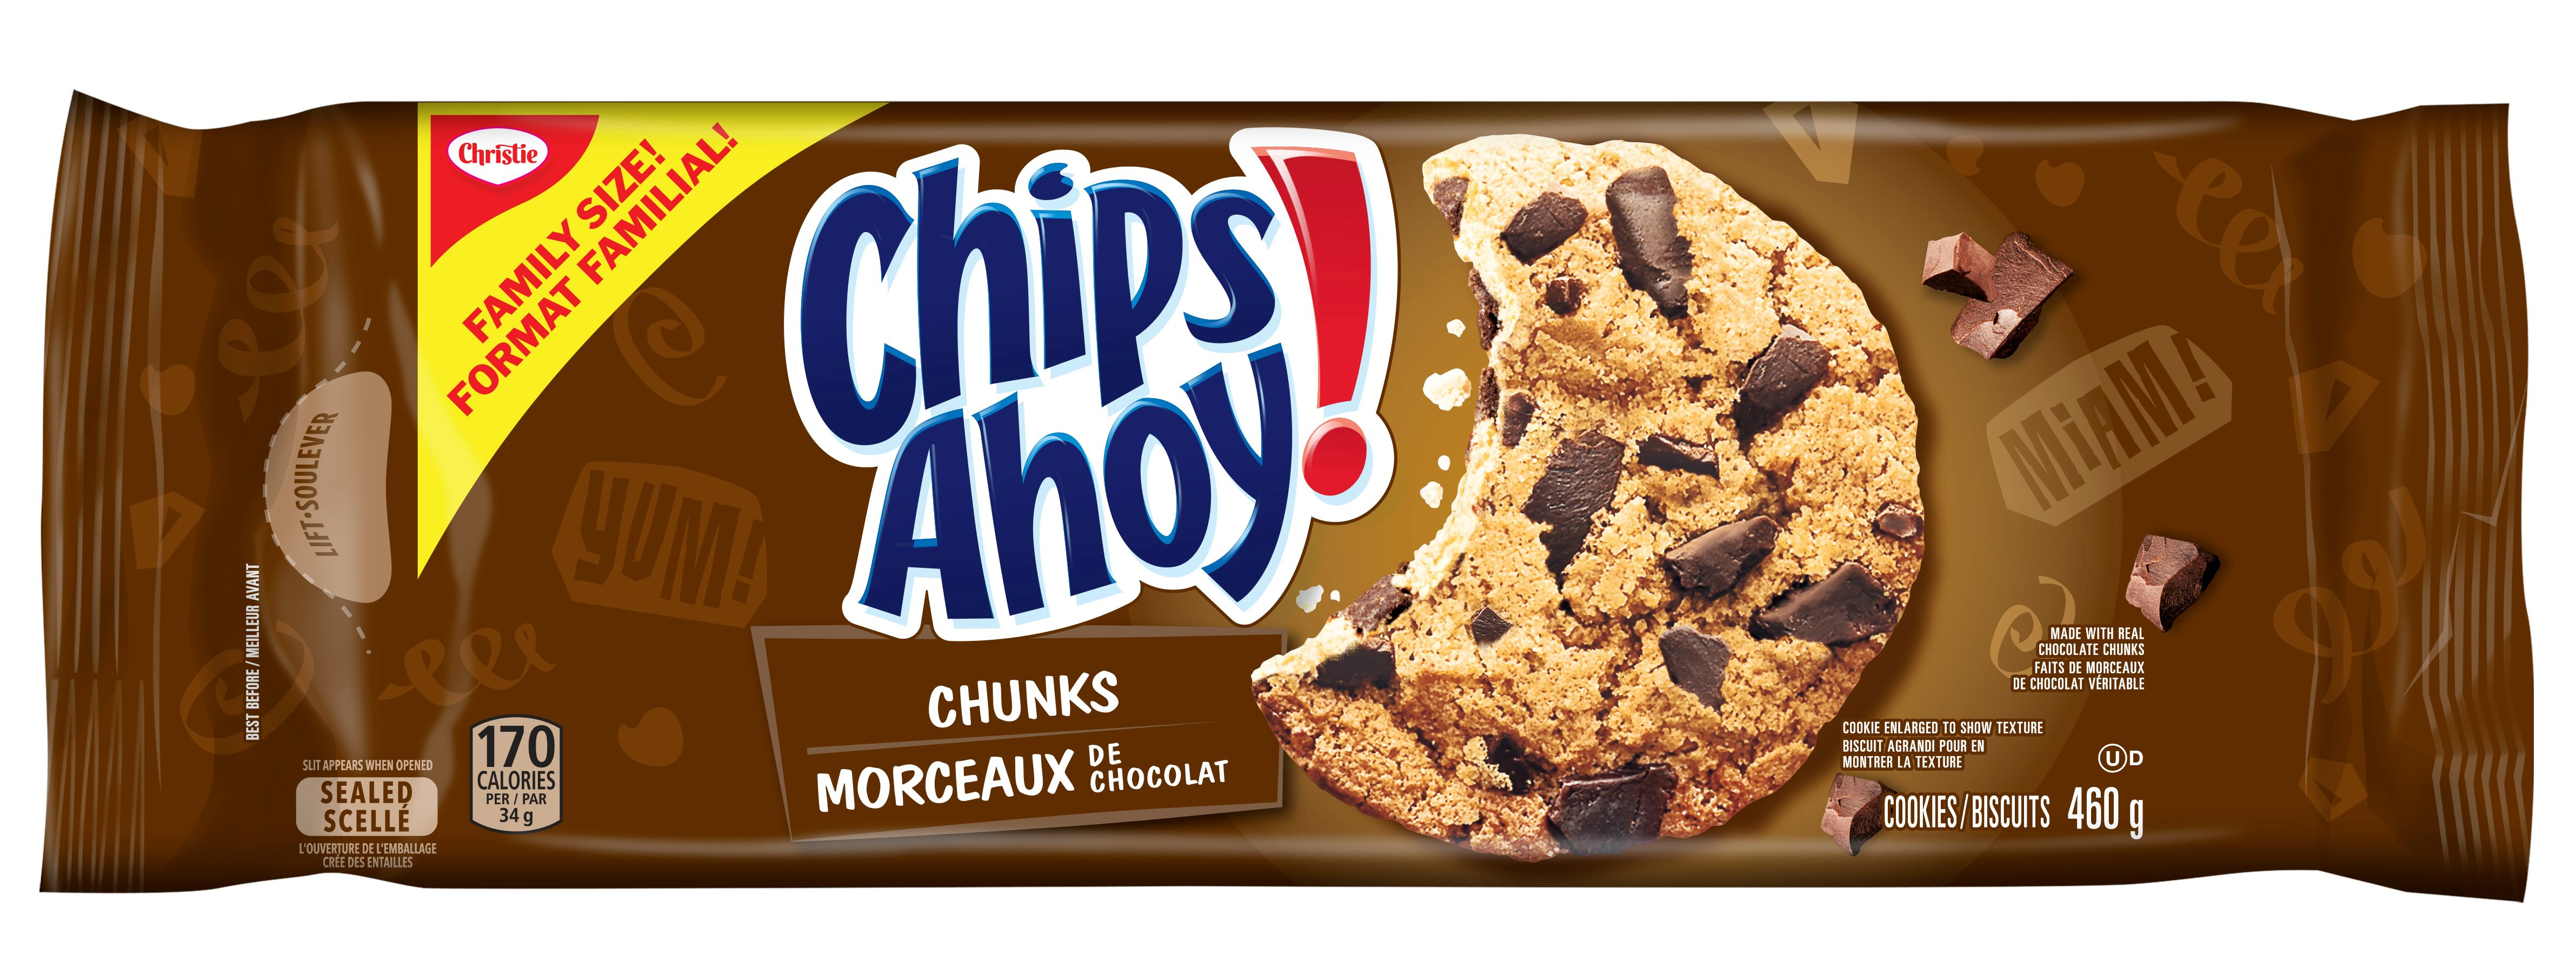 Chips Ahoy! Chunks Biscuits 460 G